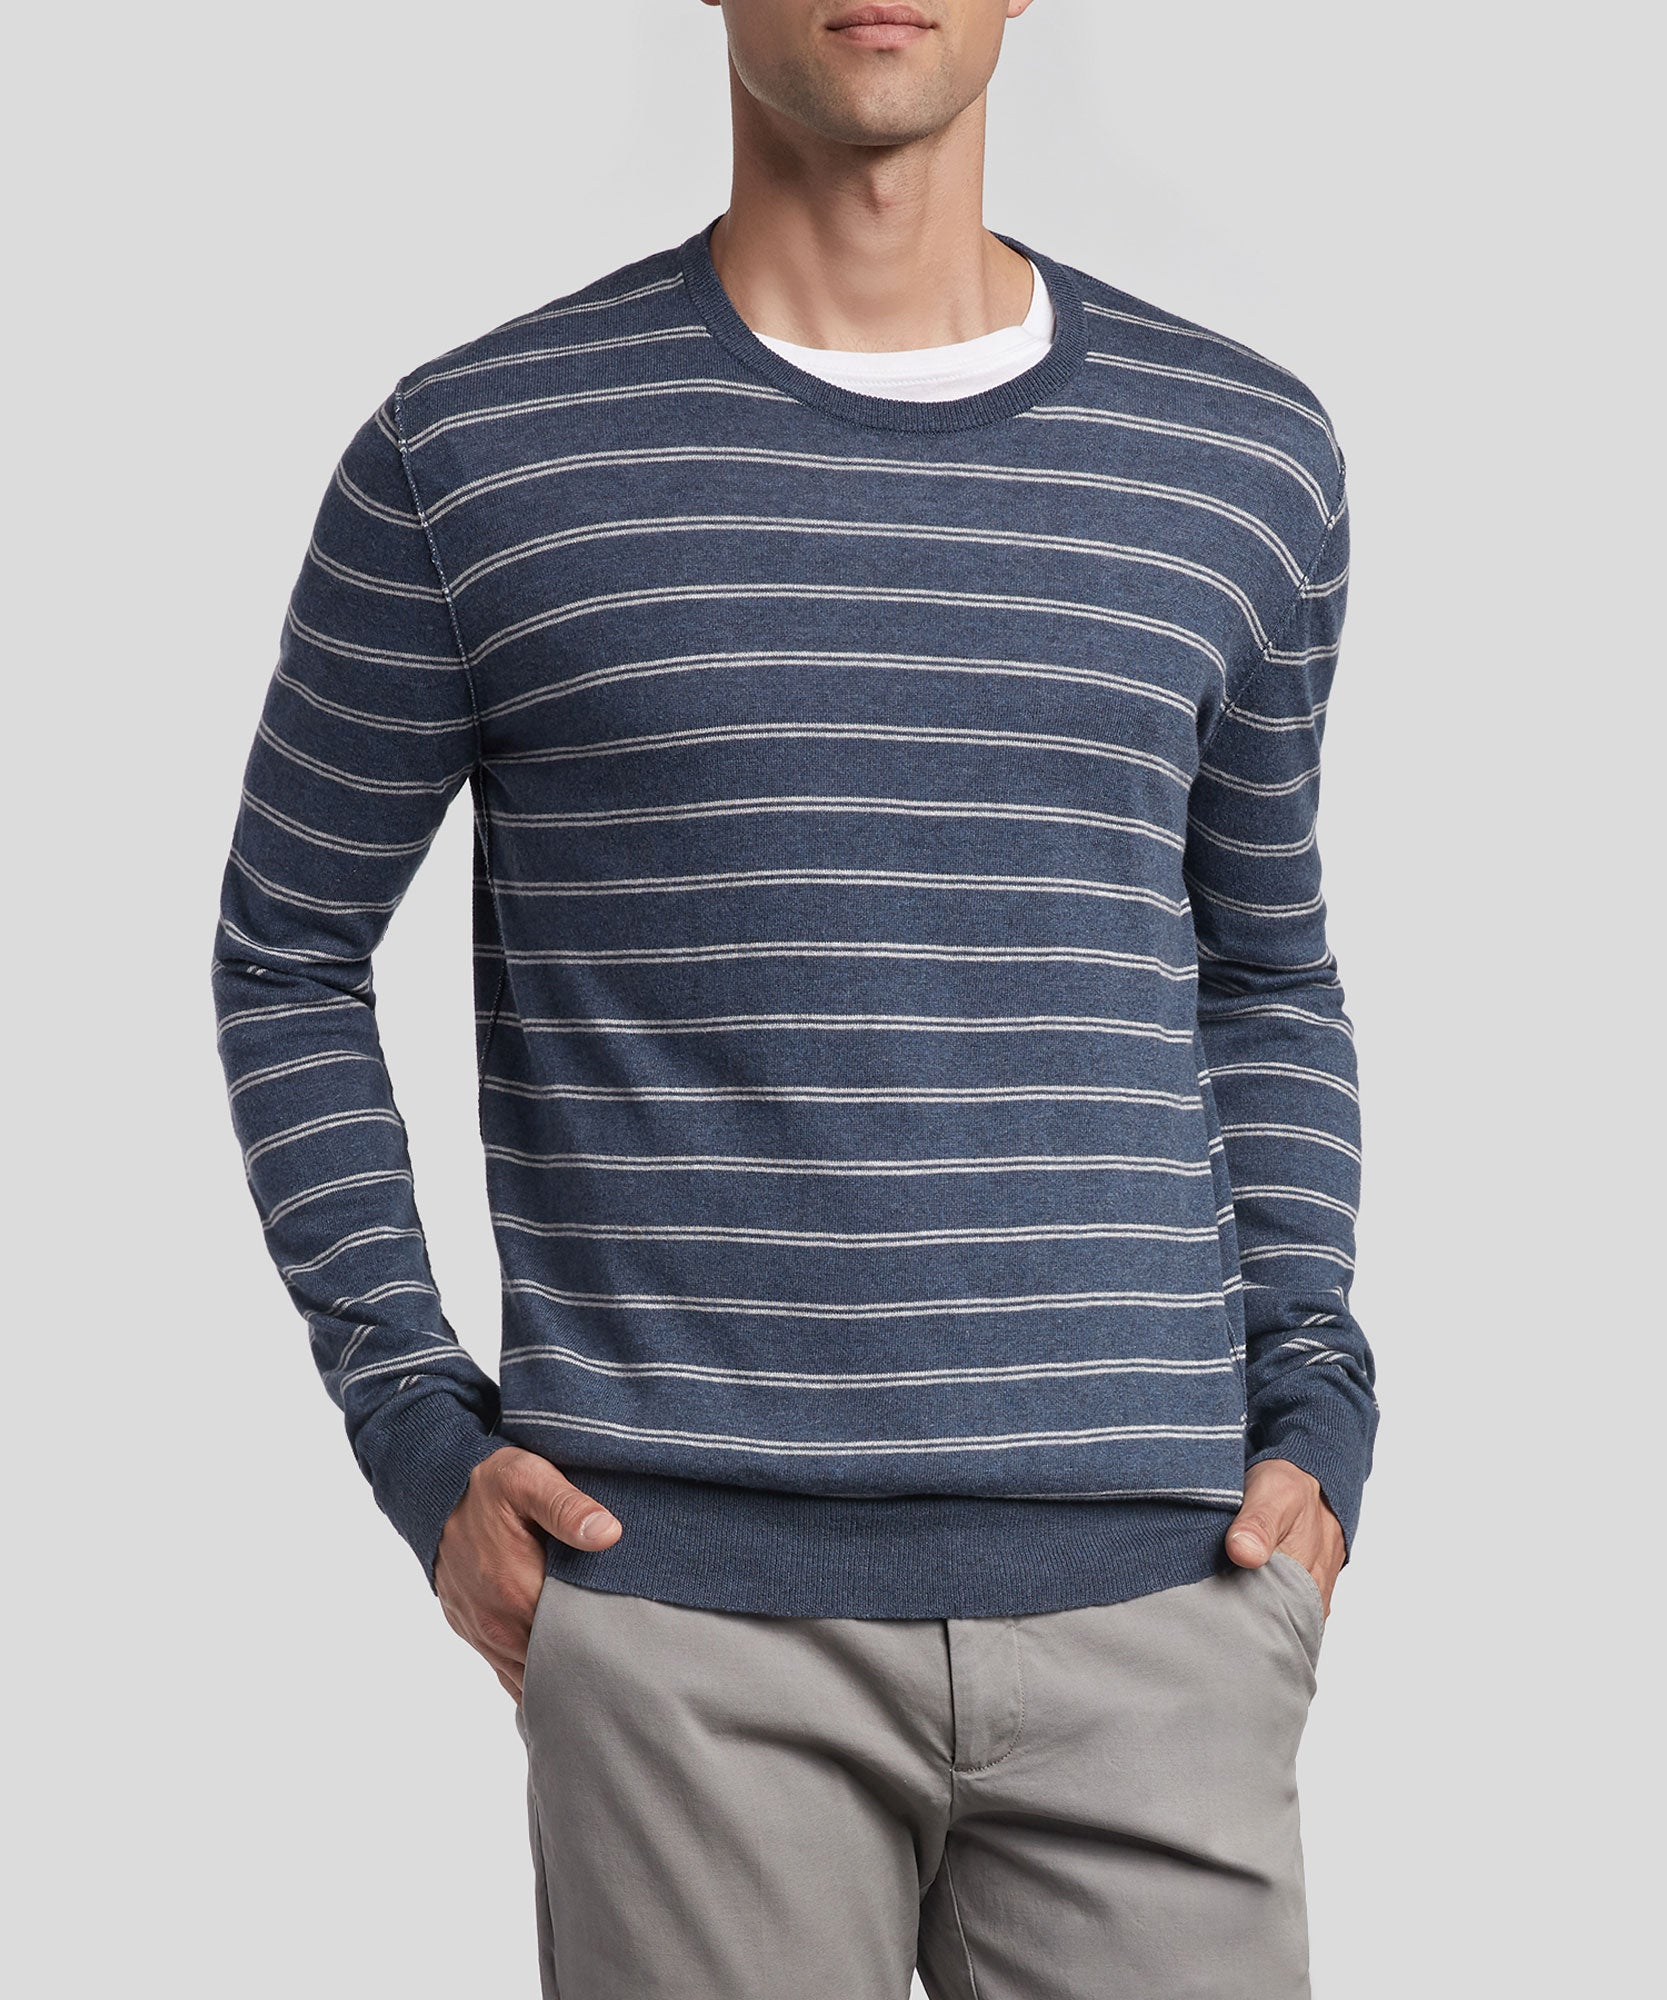 Blue and Grey Cotton Blend Double Striped Crew Neck Sweater - Men's Luxe Sweater by ATM Anthony Thomas Melillo